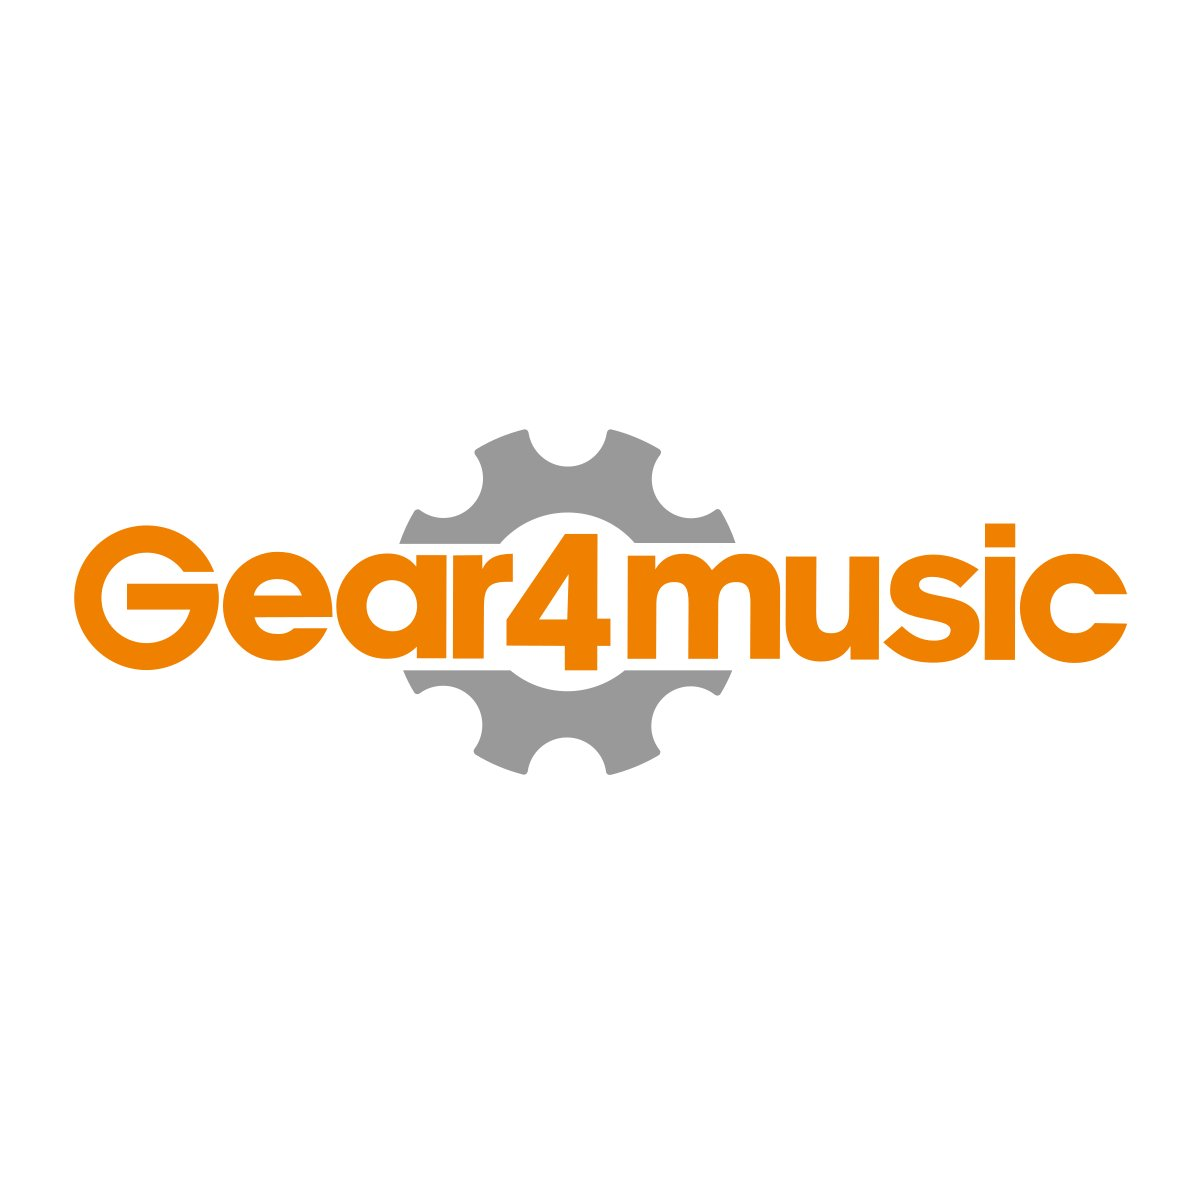 GDP-100 Pianoforte Gear4music